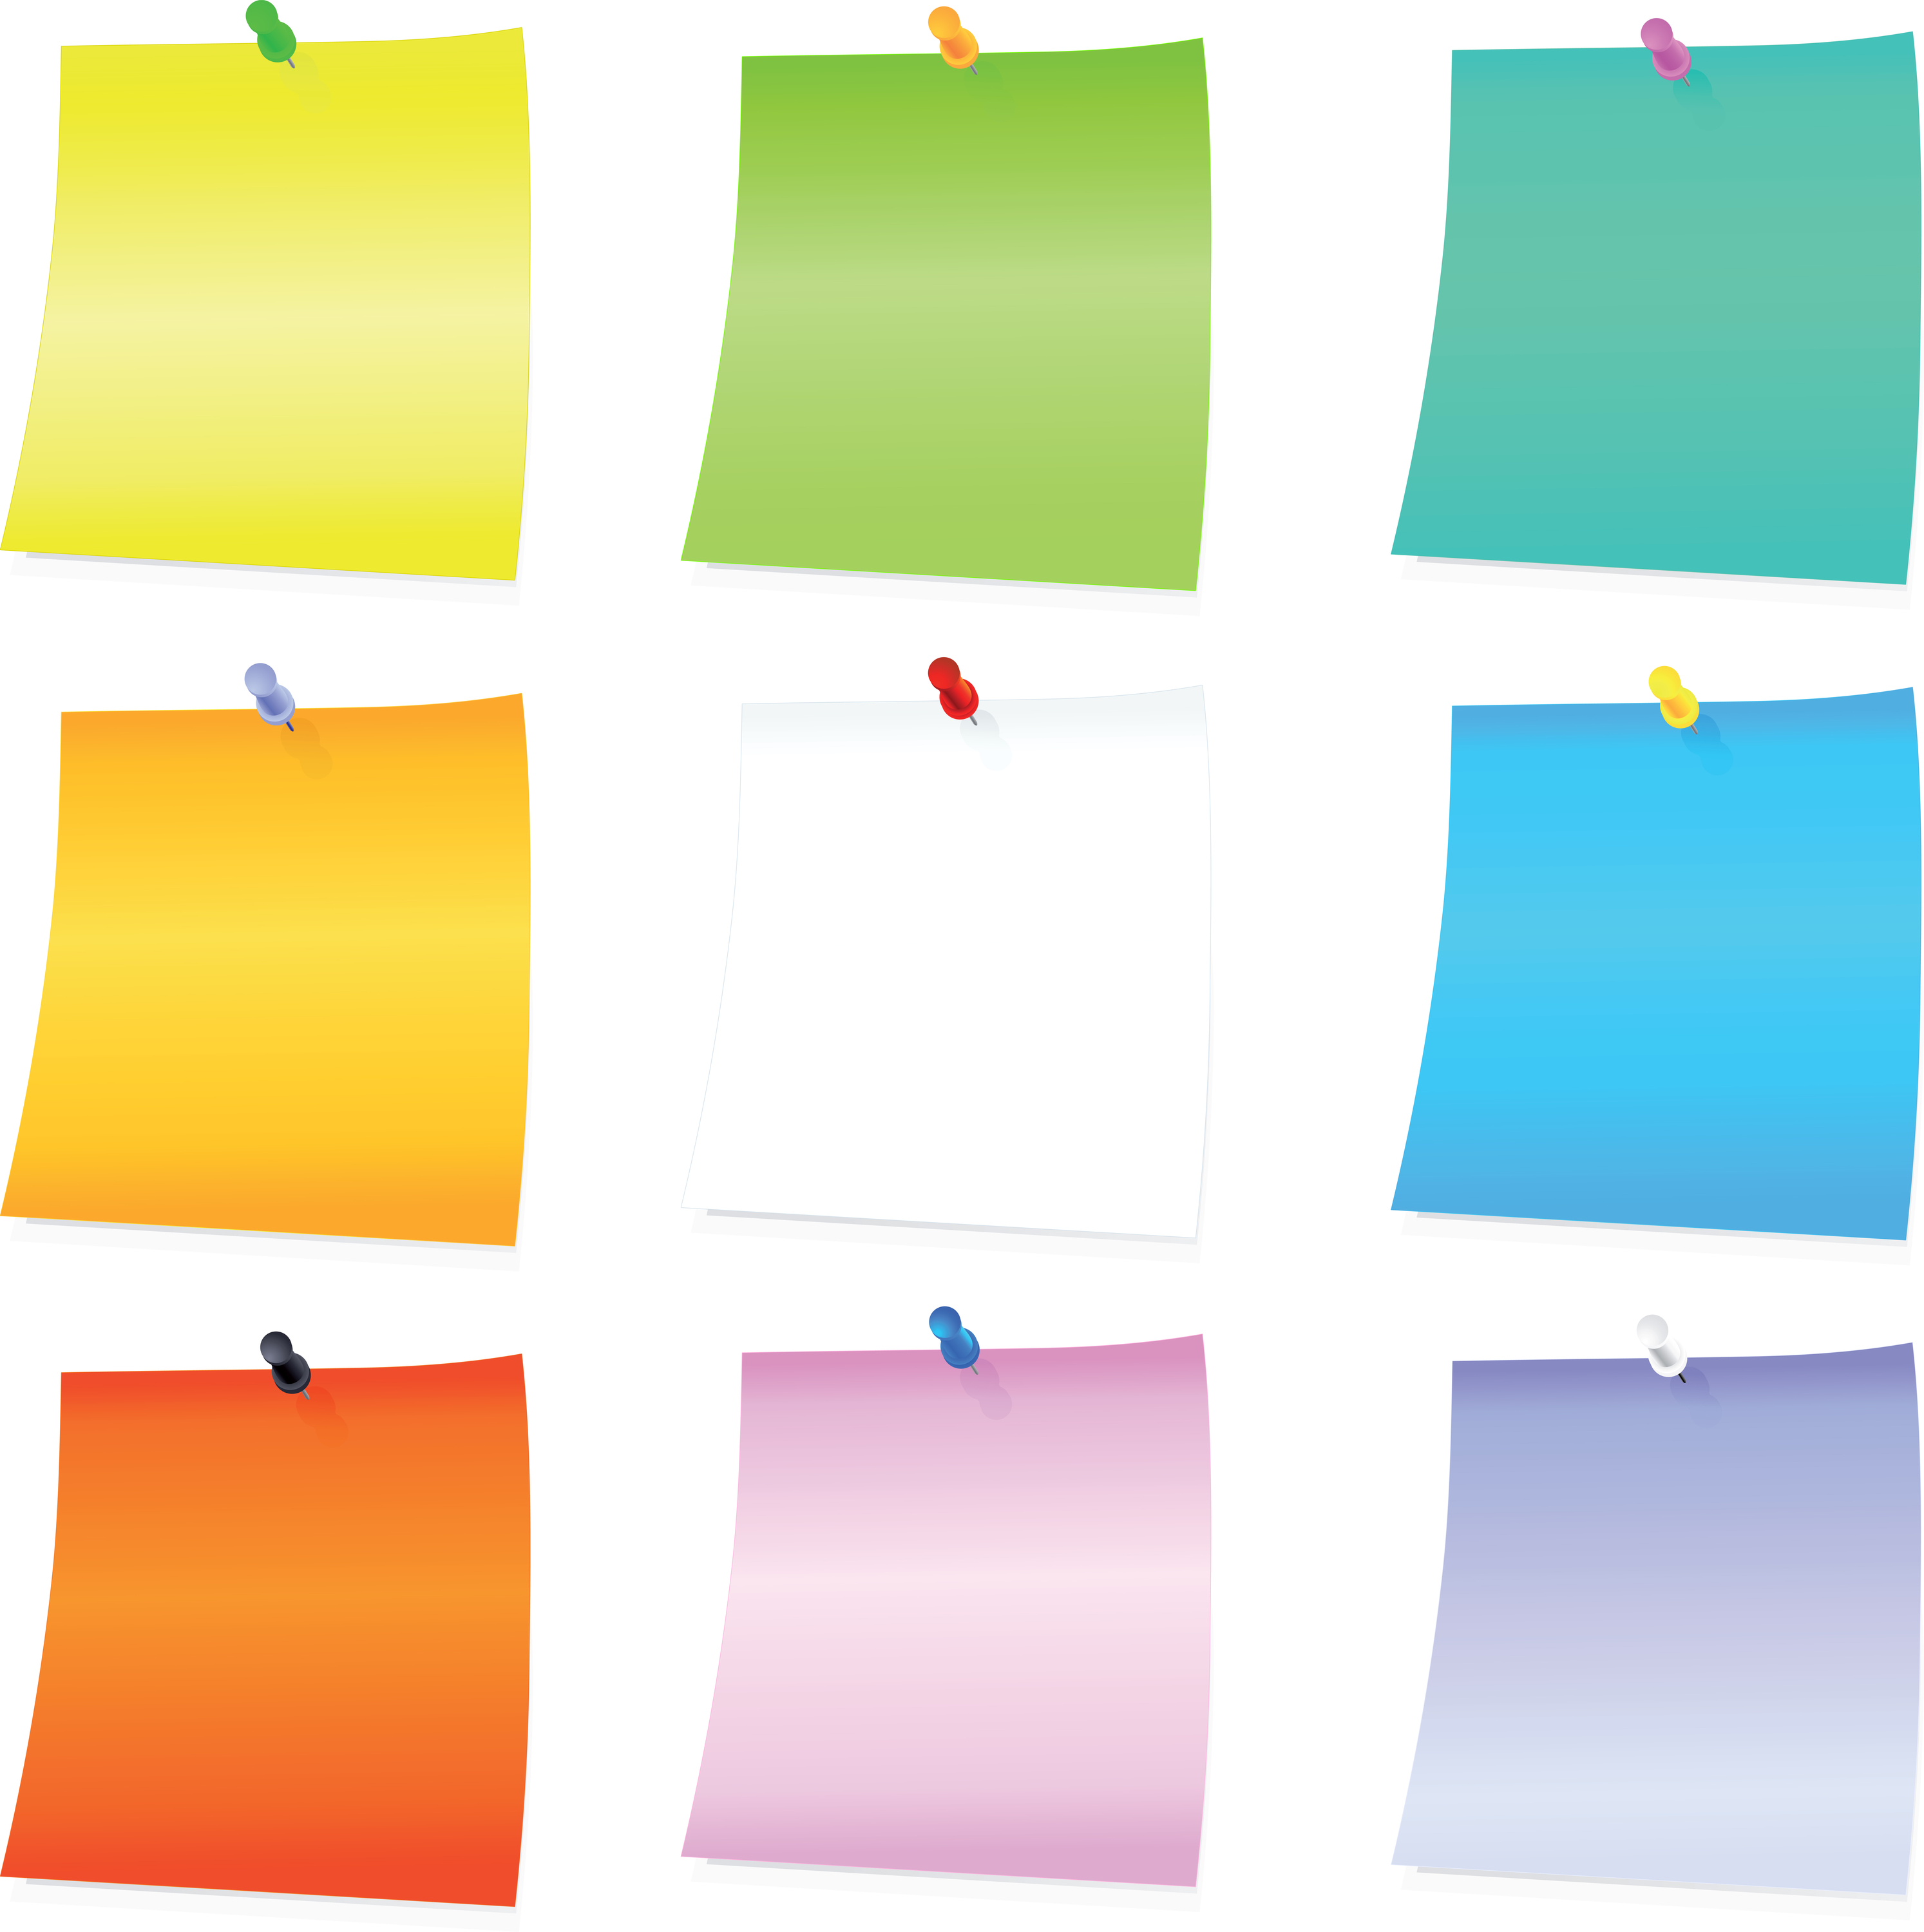 Post-its clipart - Clipground